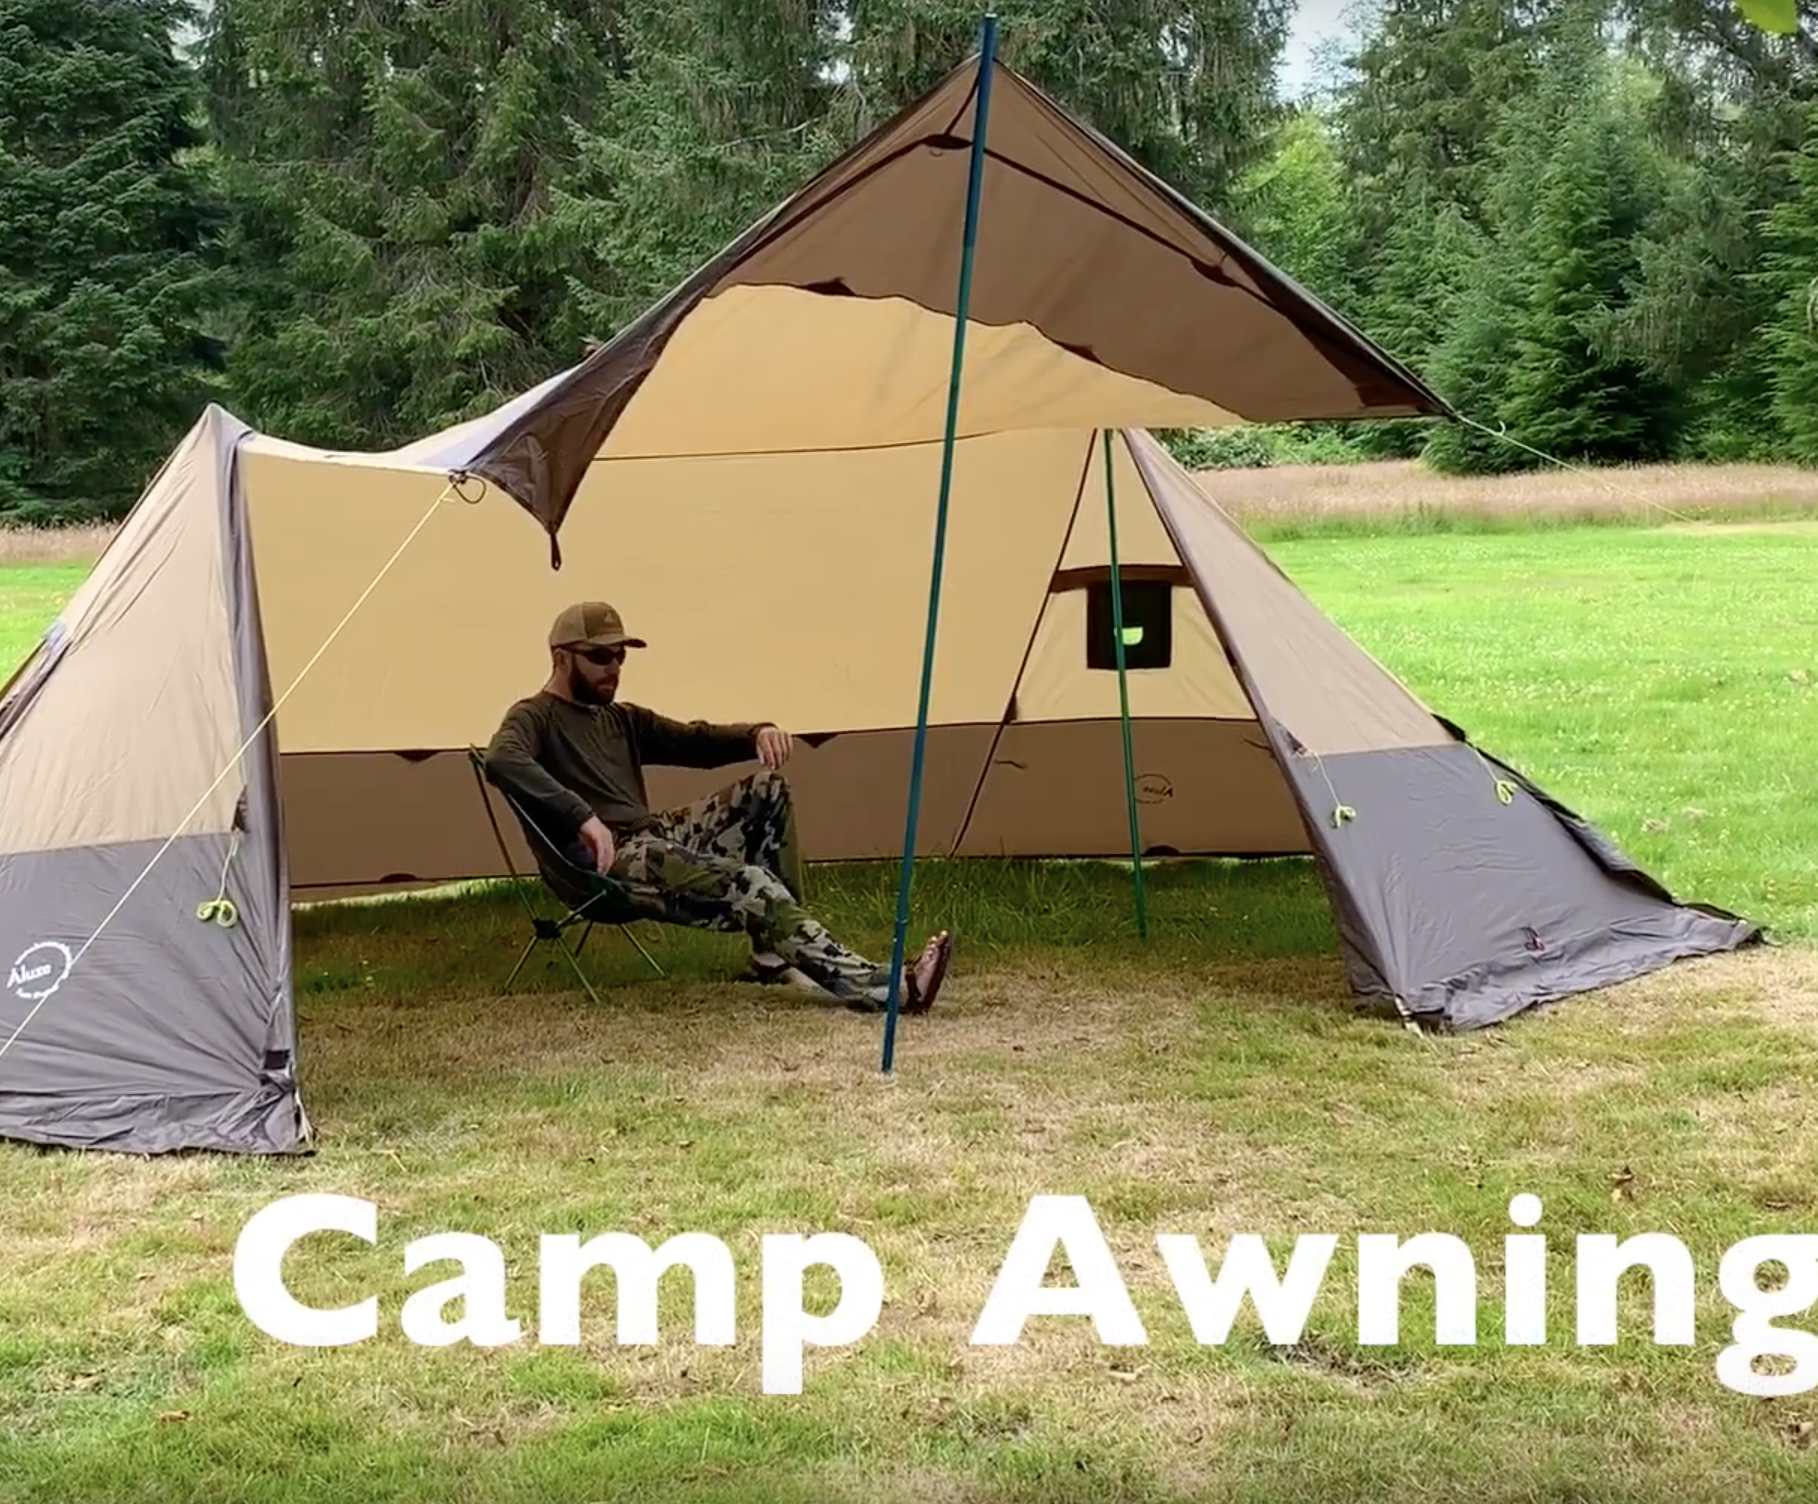 Twinpeak 5 Person Awning Tent With Stove Jack Quick Look Video Lightweight Camping Gear Camping Style Tent Stove